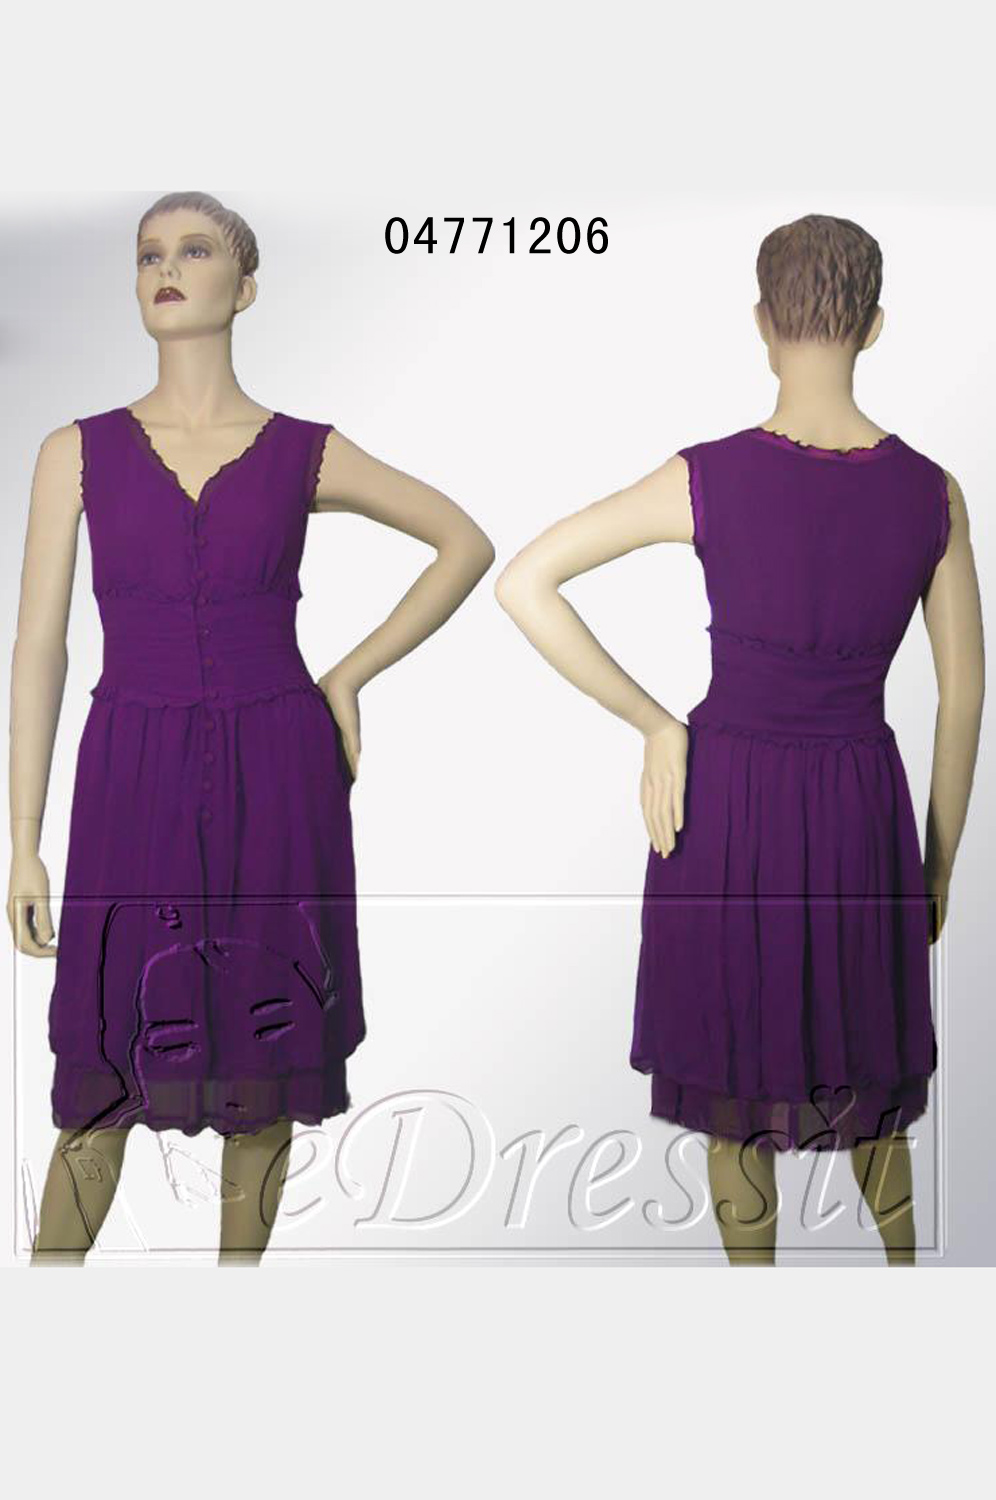 eDressit Cocktail Dress (04771206s)